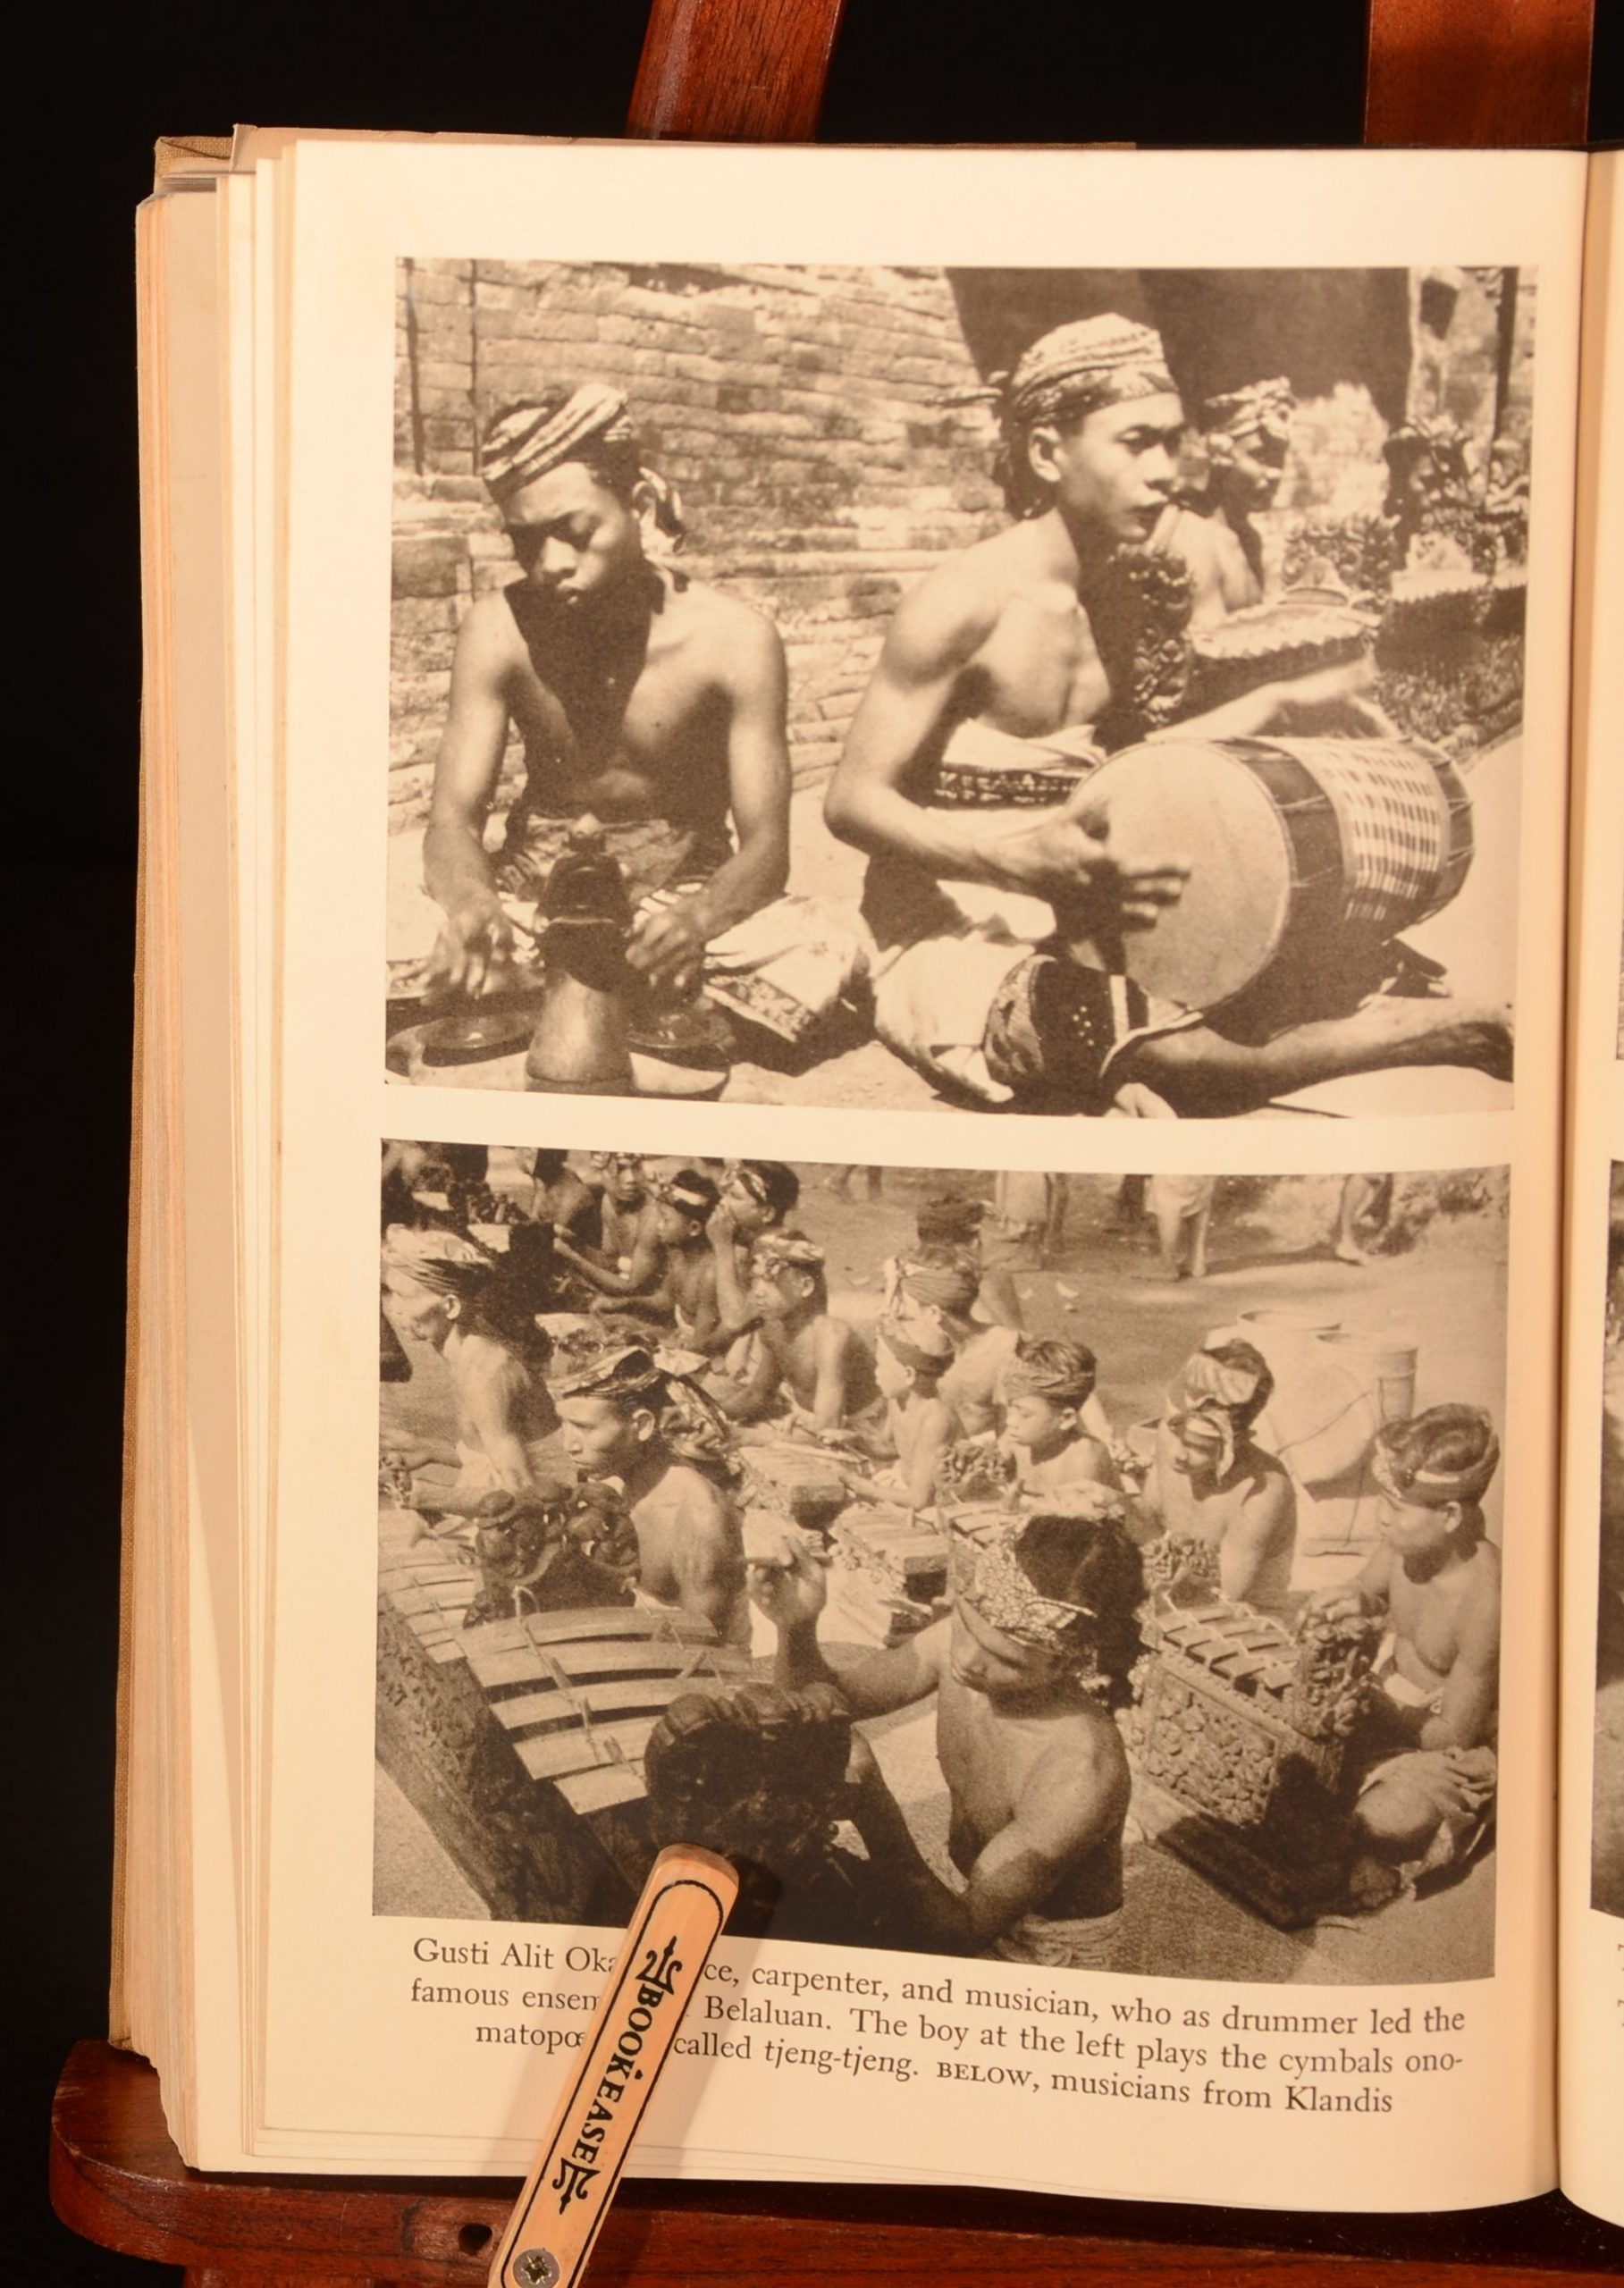 Photographs from the book